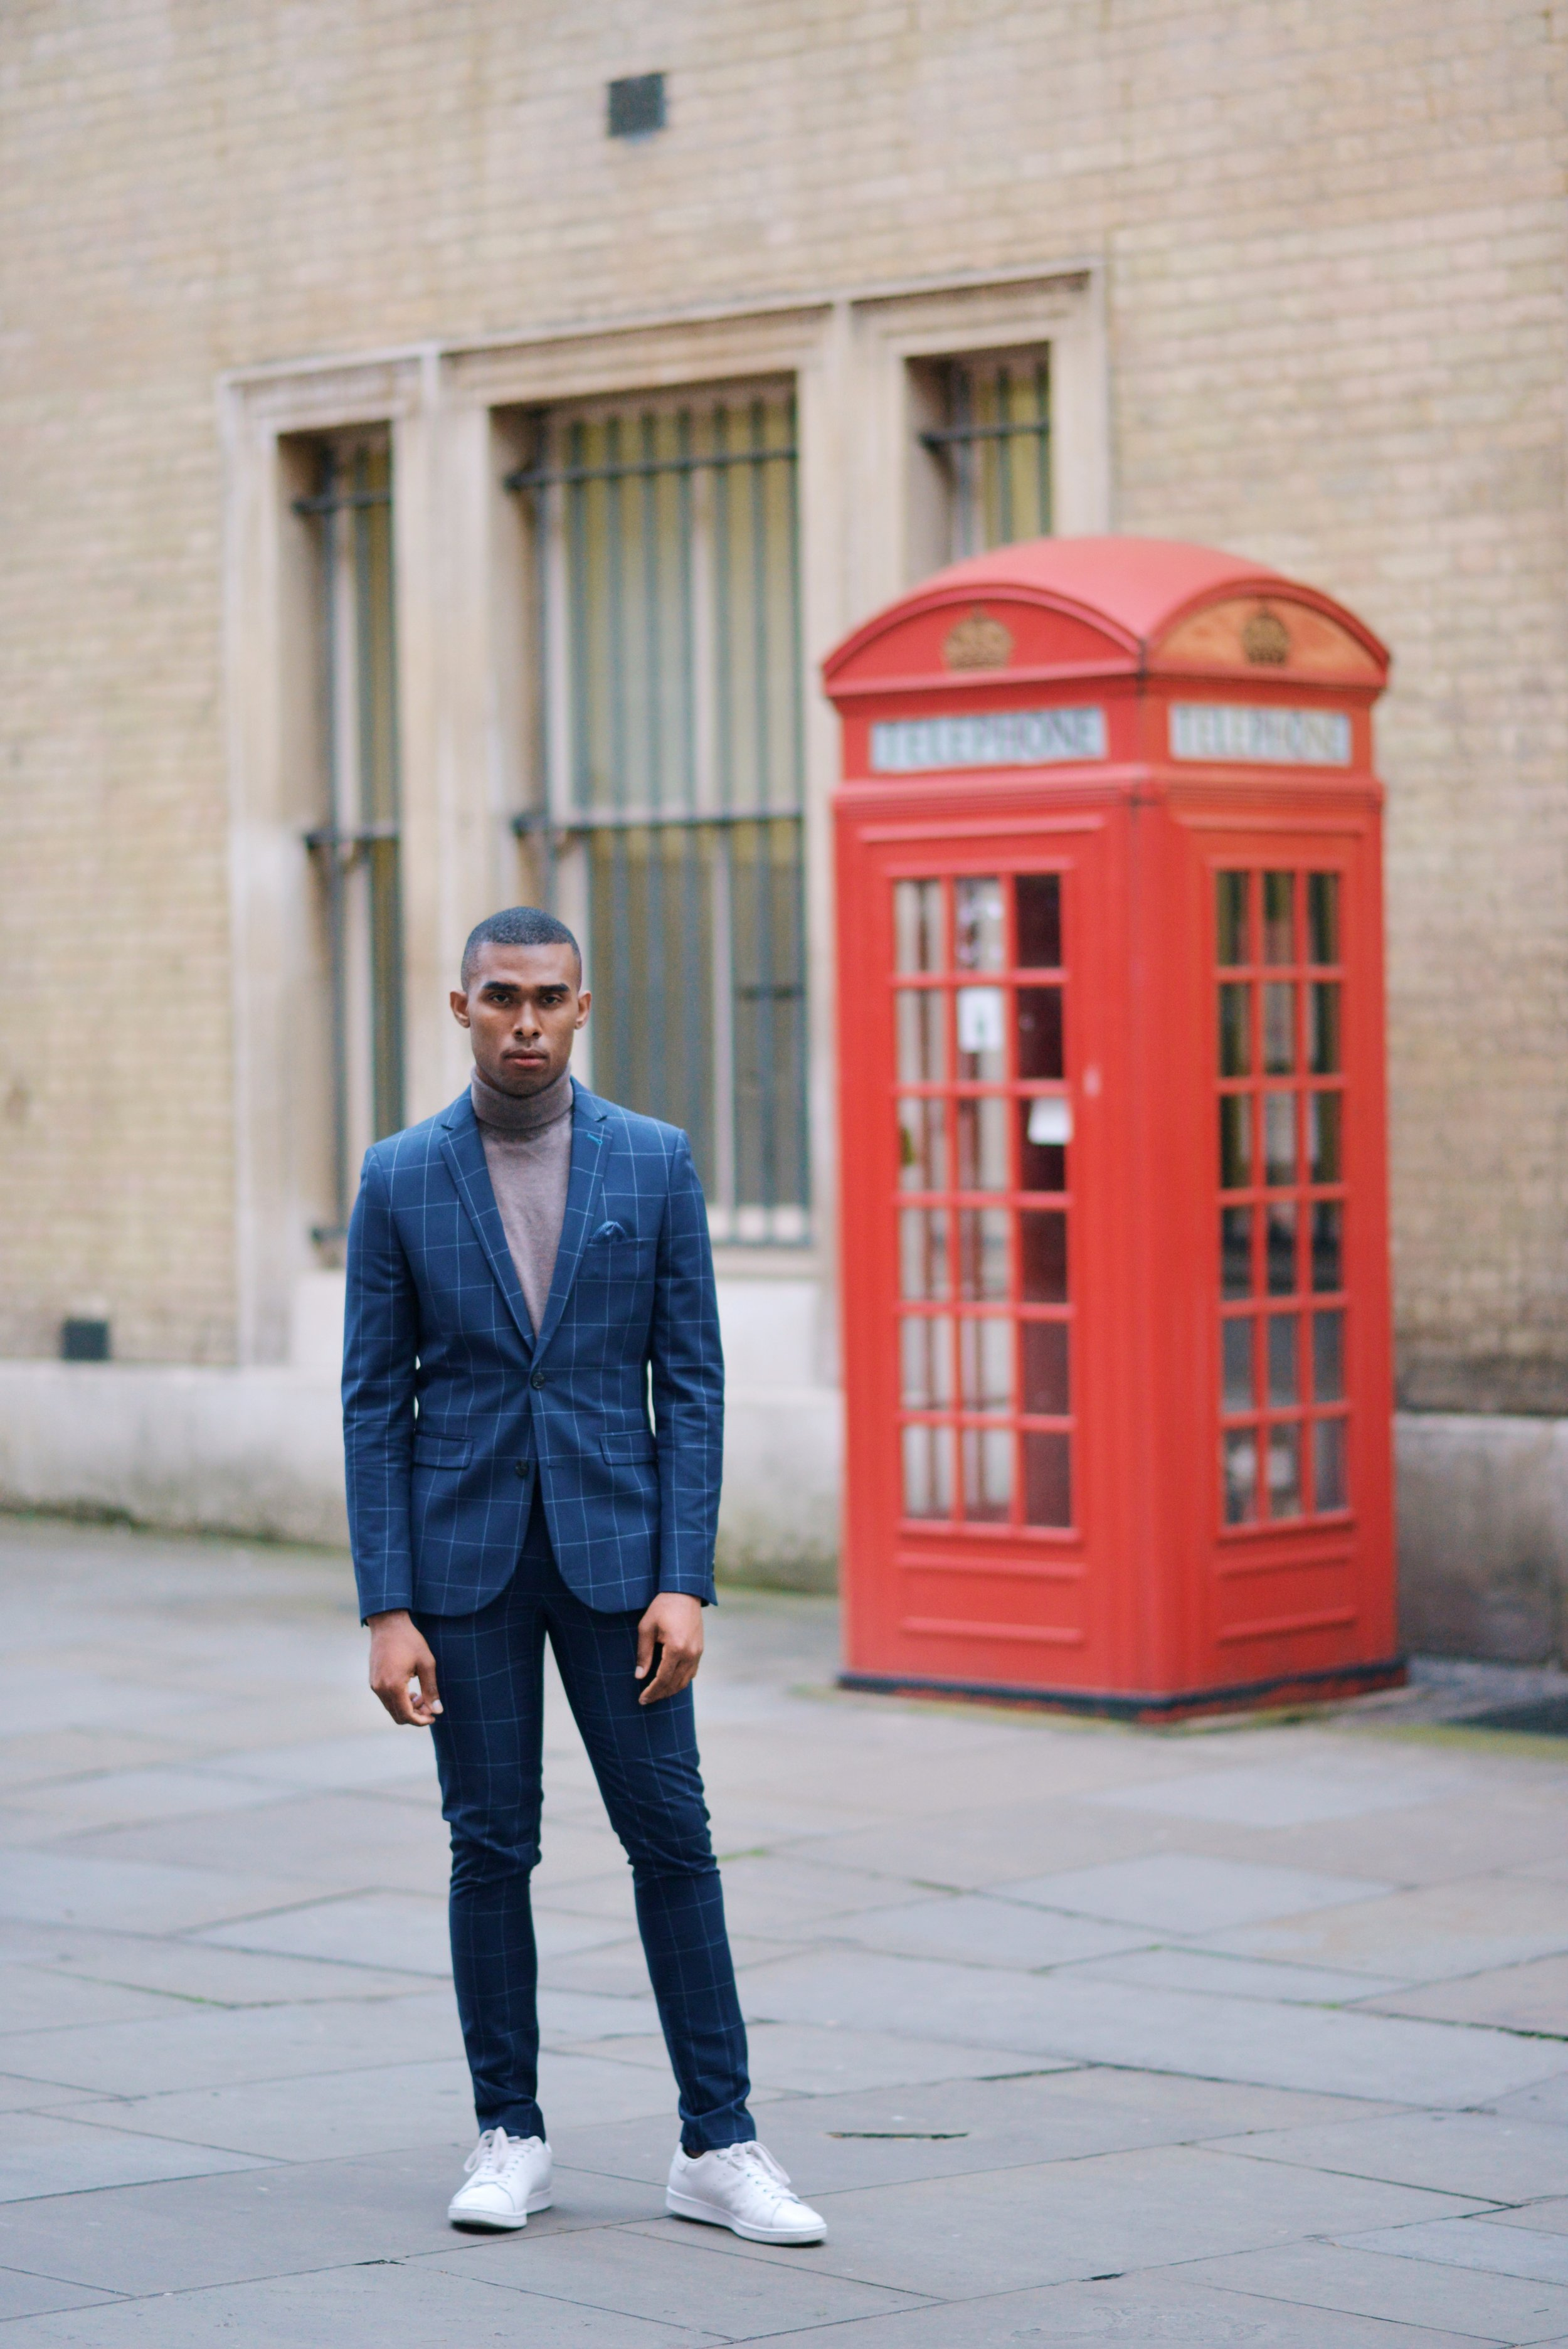 The-Look-Principle-Suited-Up-In-London-2.jpg